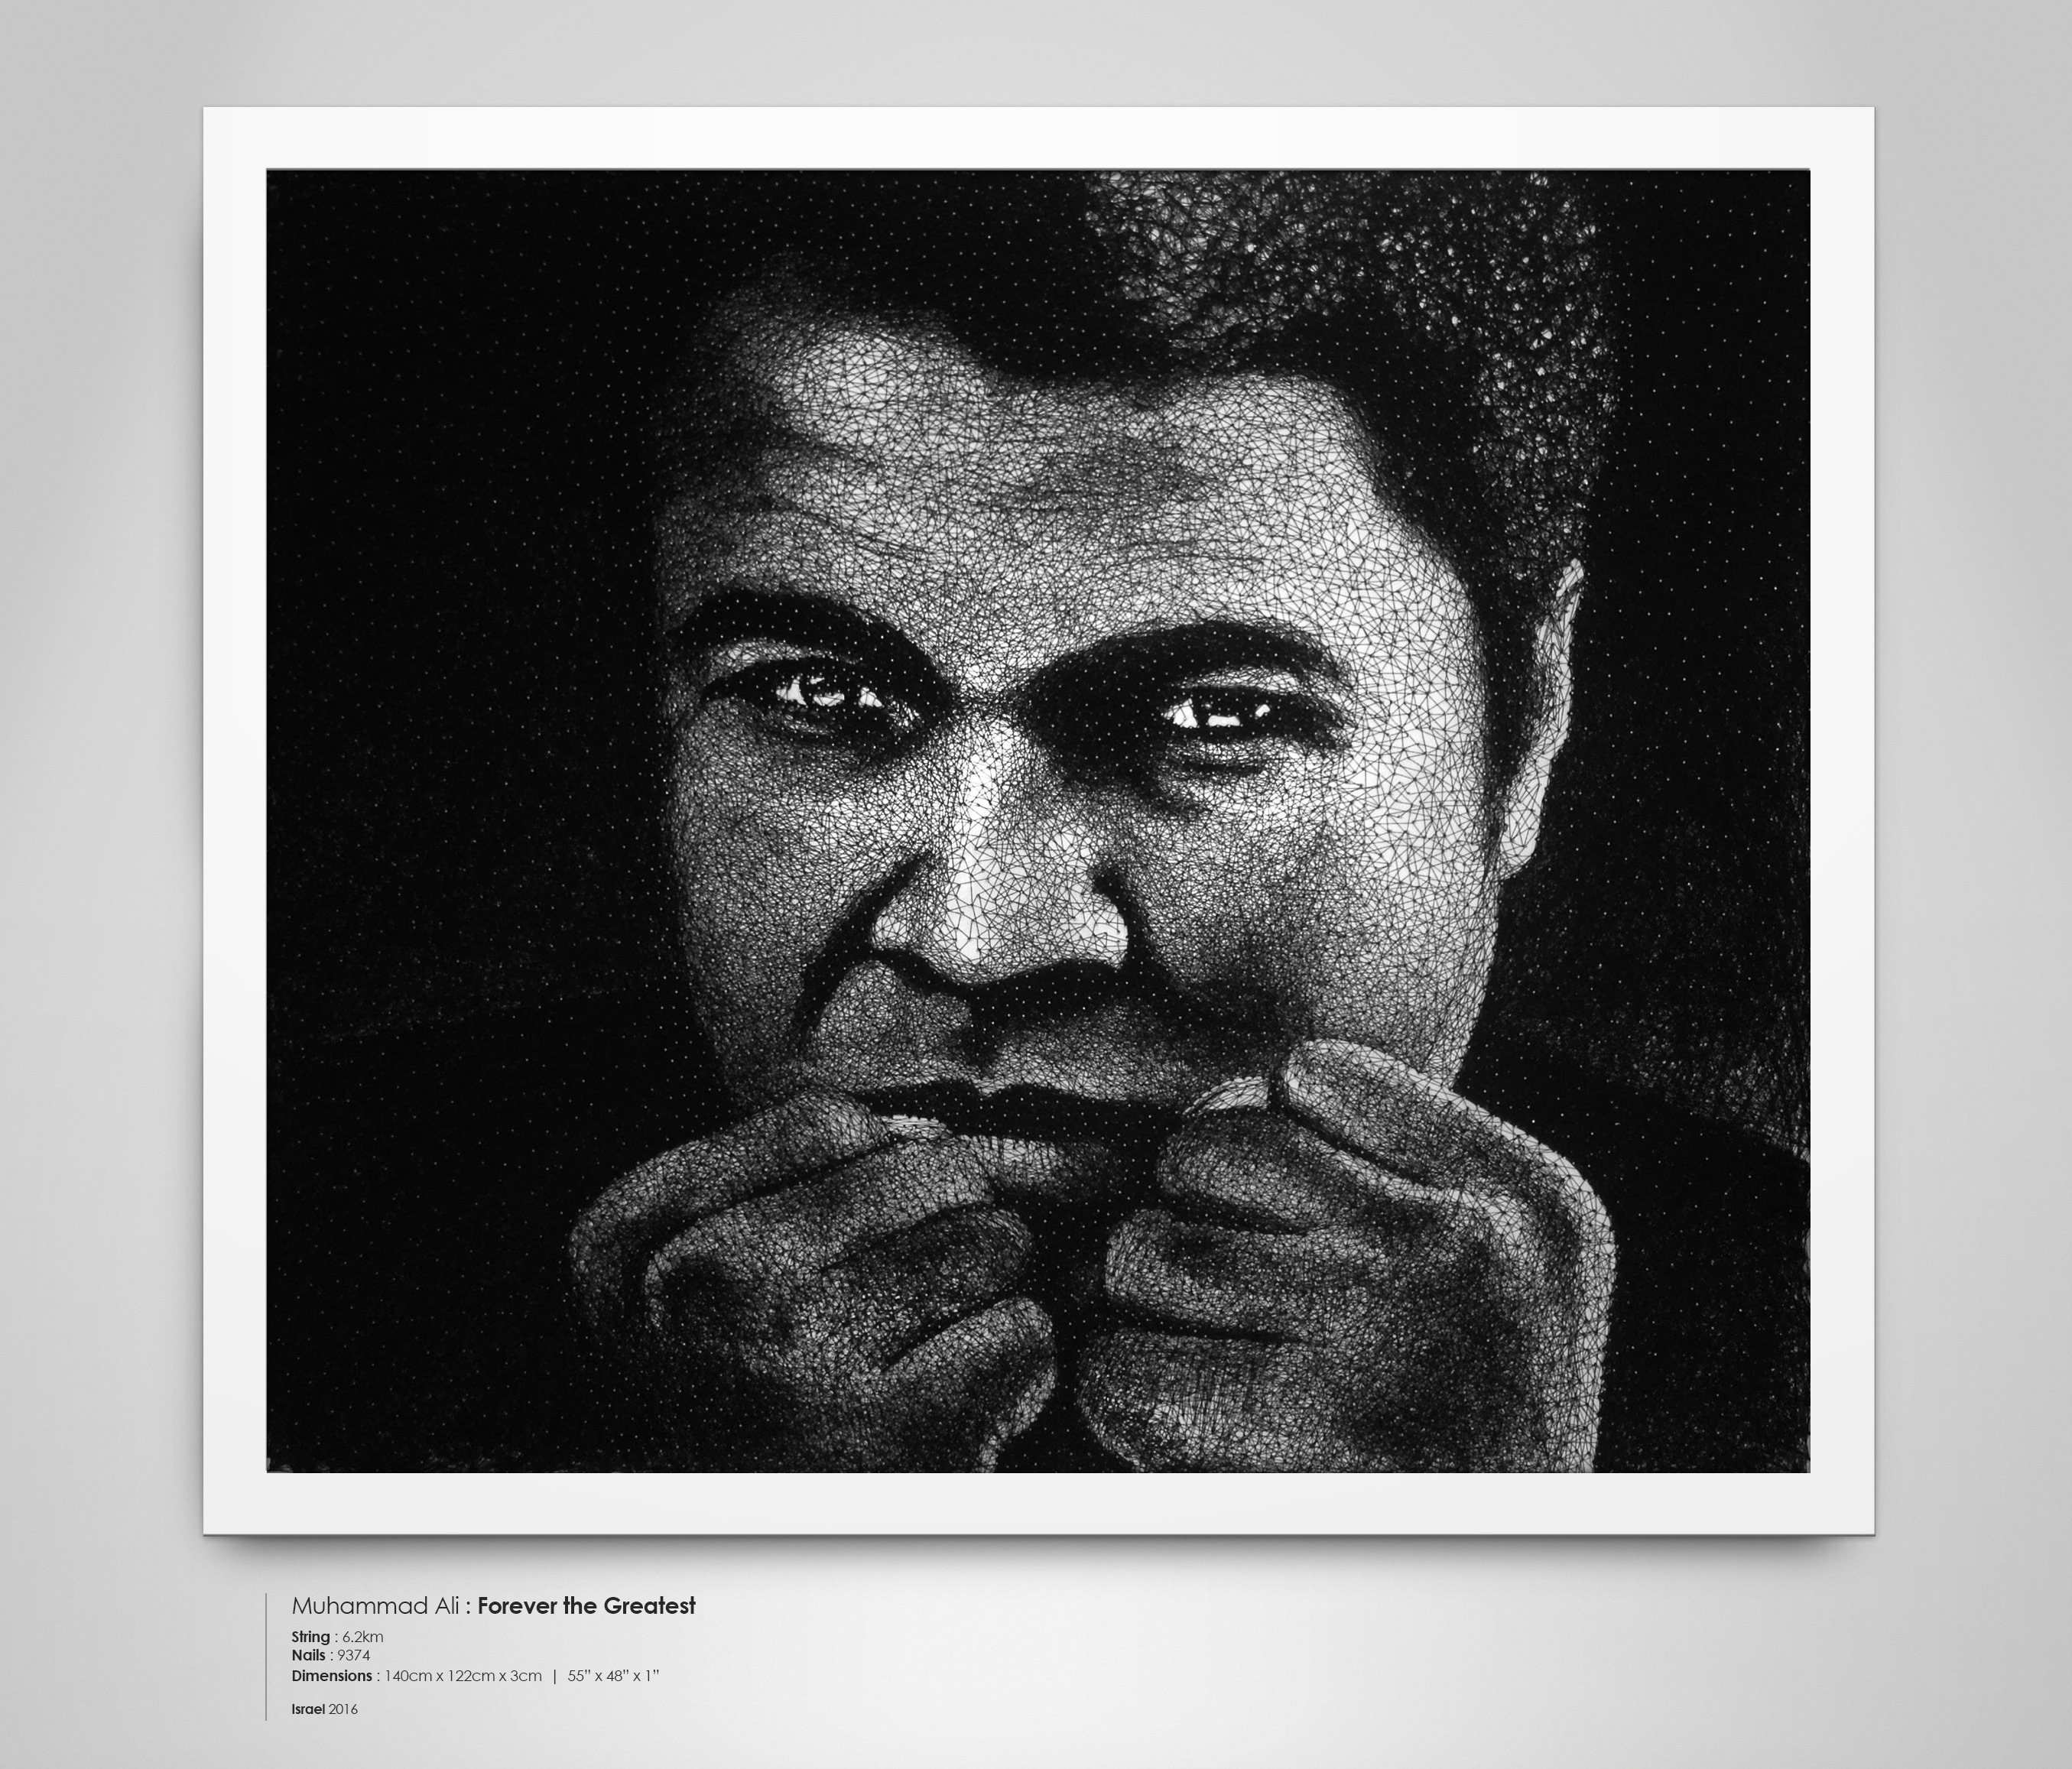 Muhammad ali images forever the greatest hd wallpaper and muhammad ali images forever the greatest hd wallpaper and background photos voltagebd Images